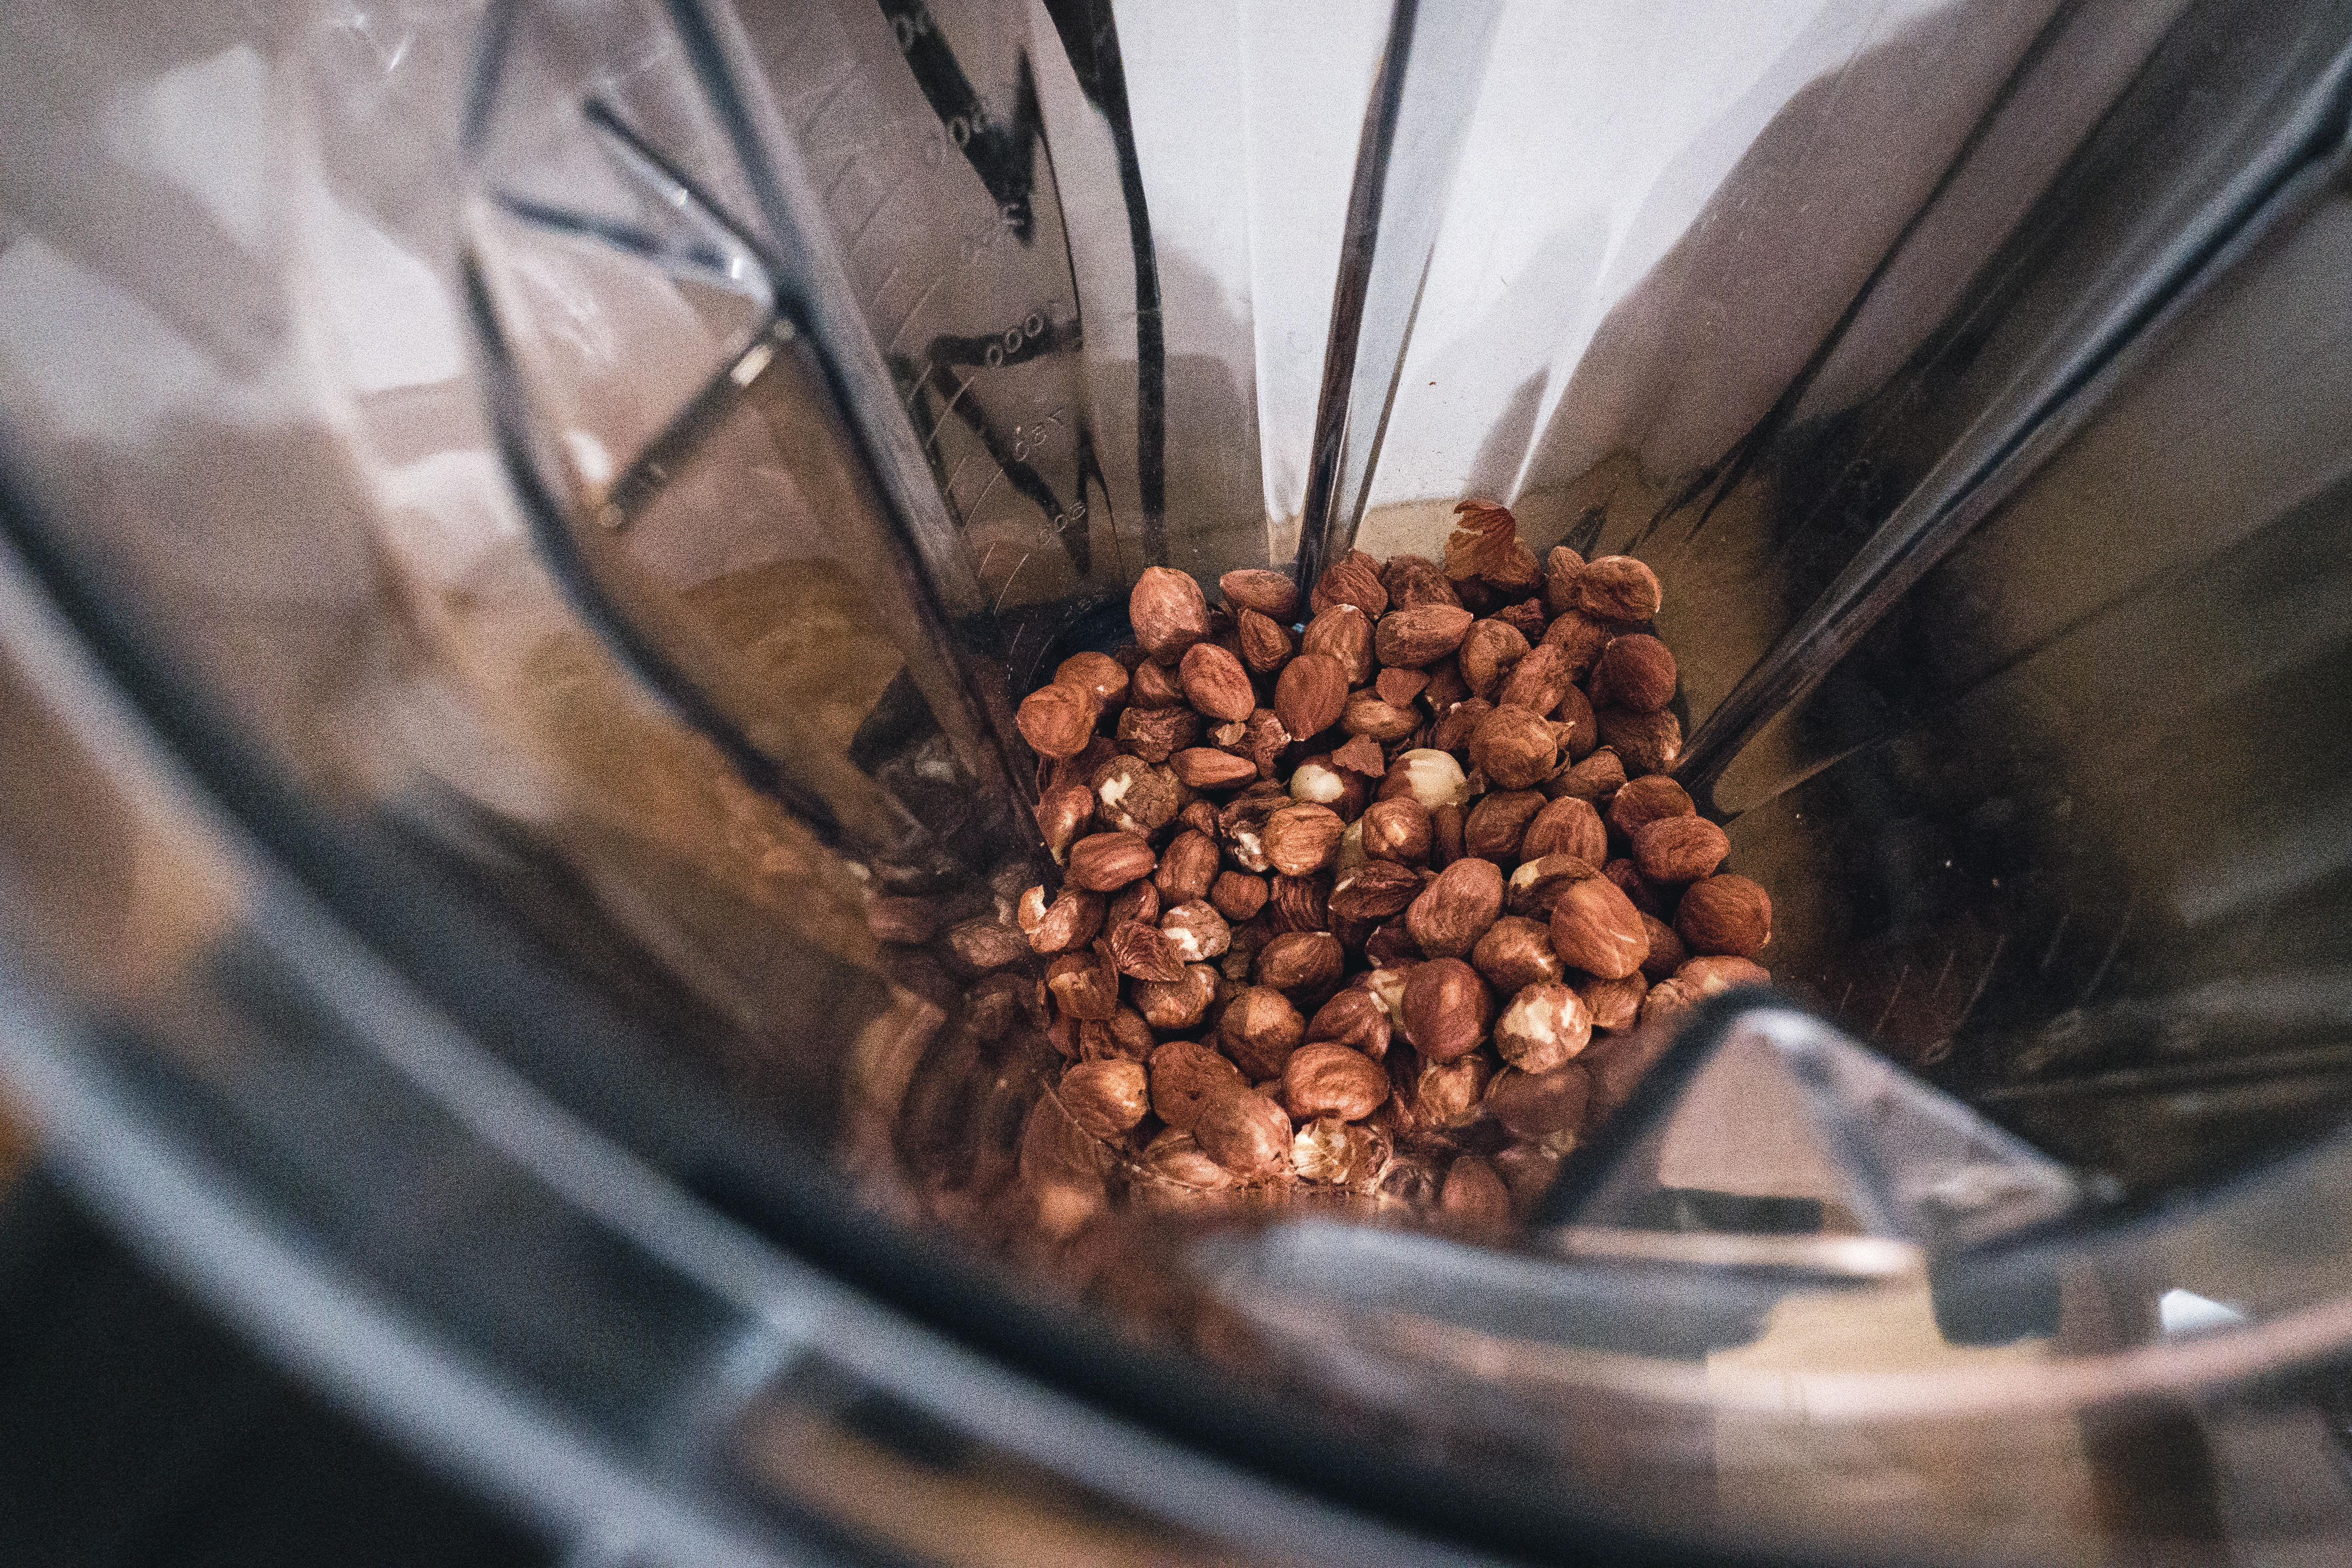 Hazelnuts in a mixer